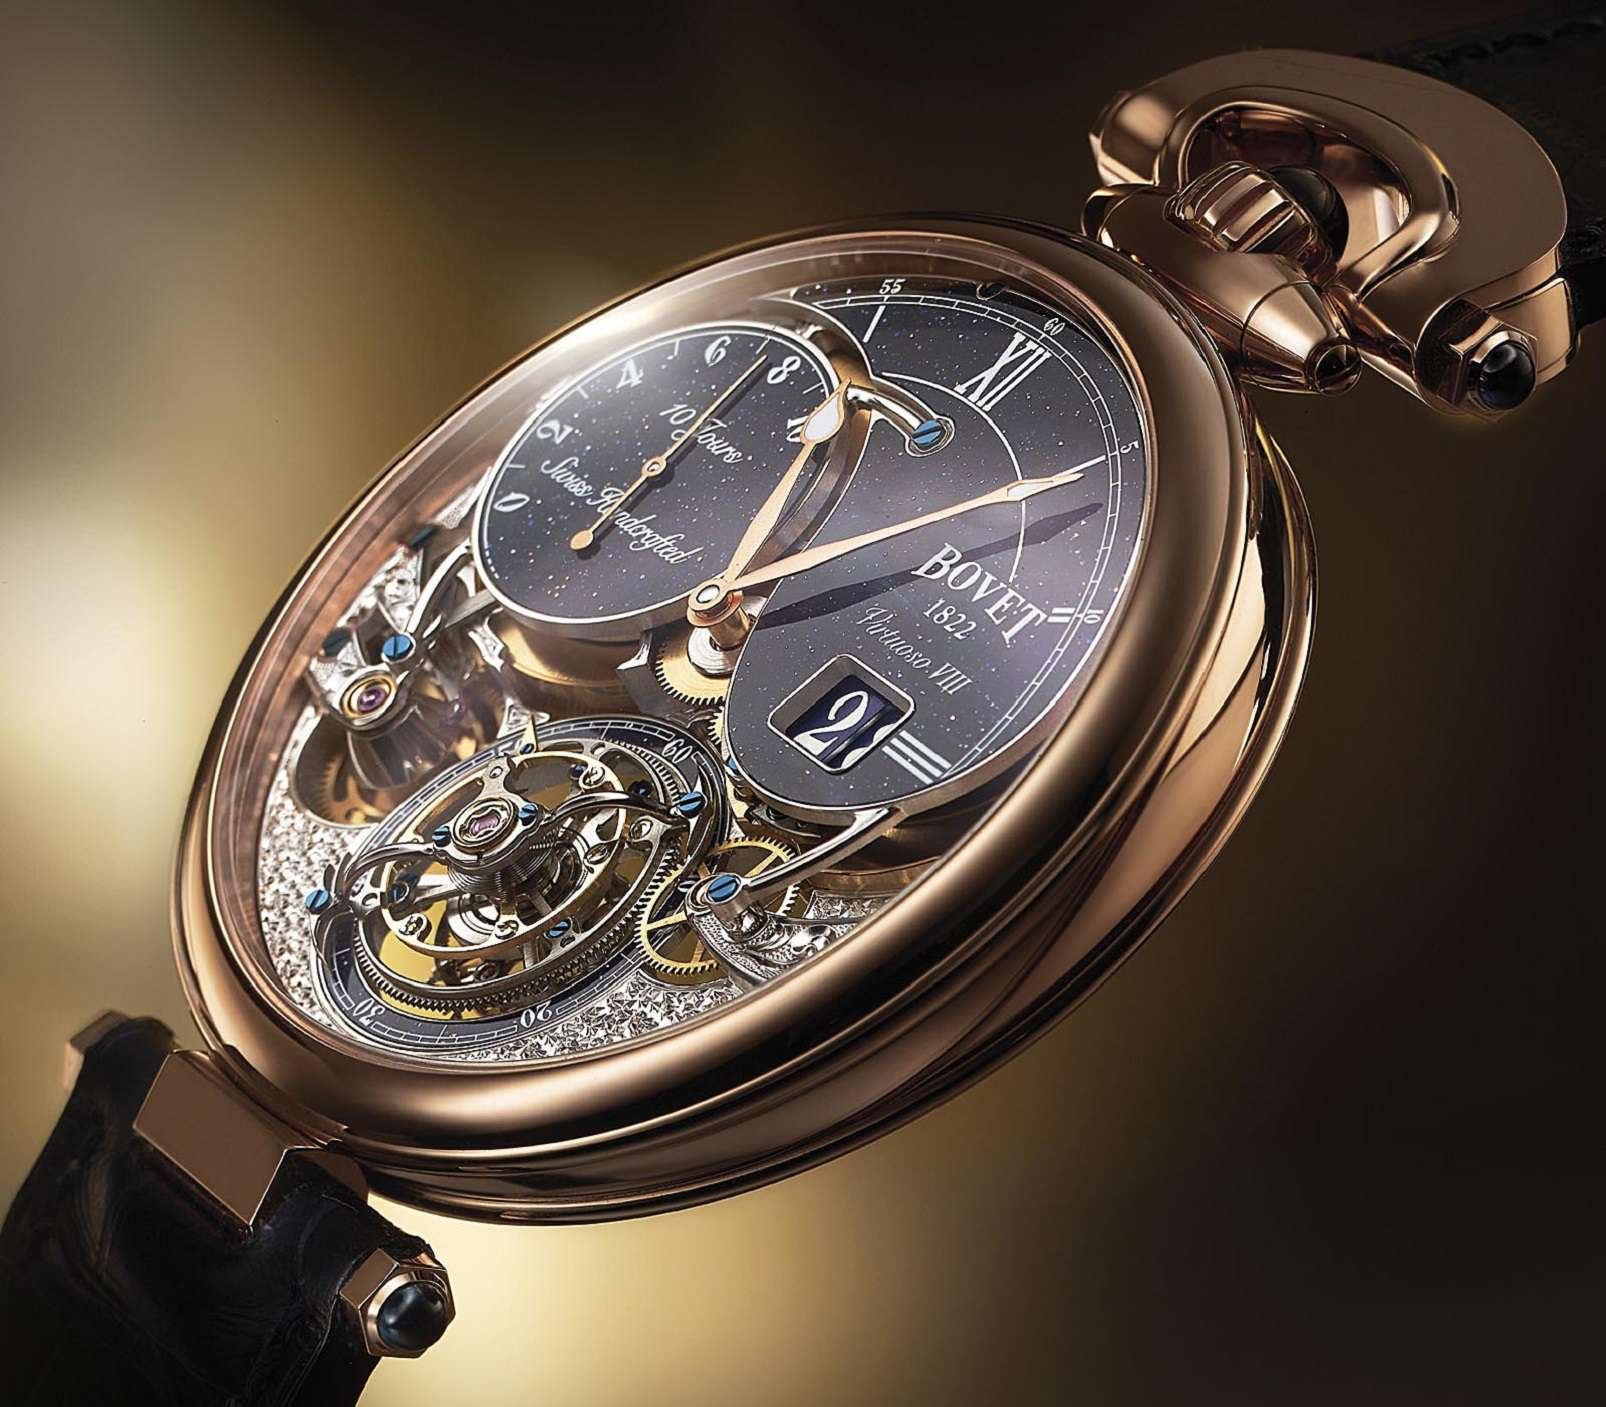 Bovet Virtuoso VIII Big Date Tourbillon